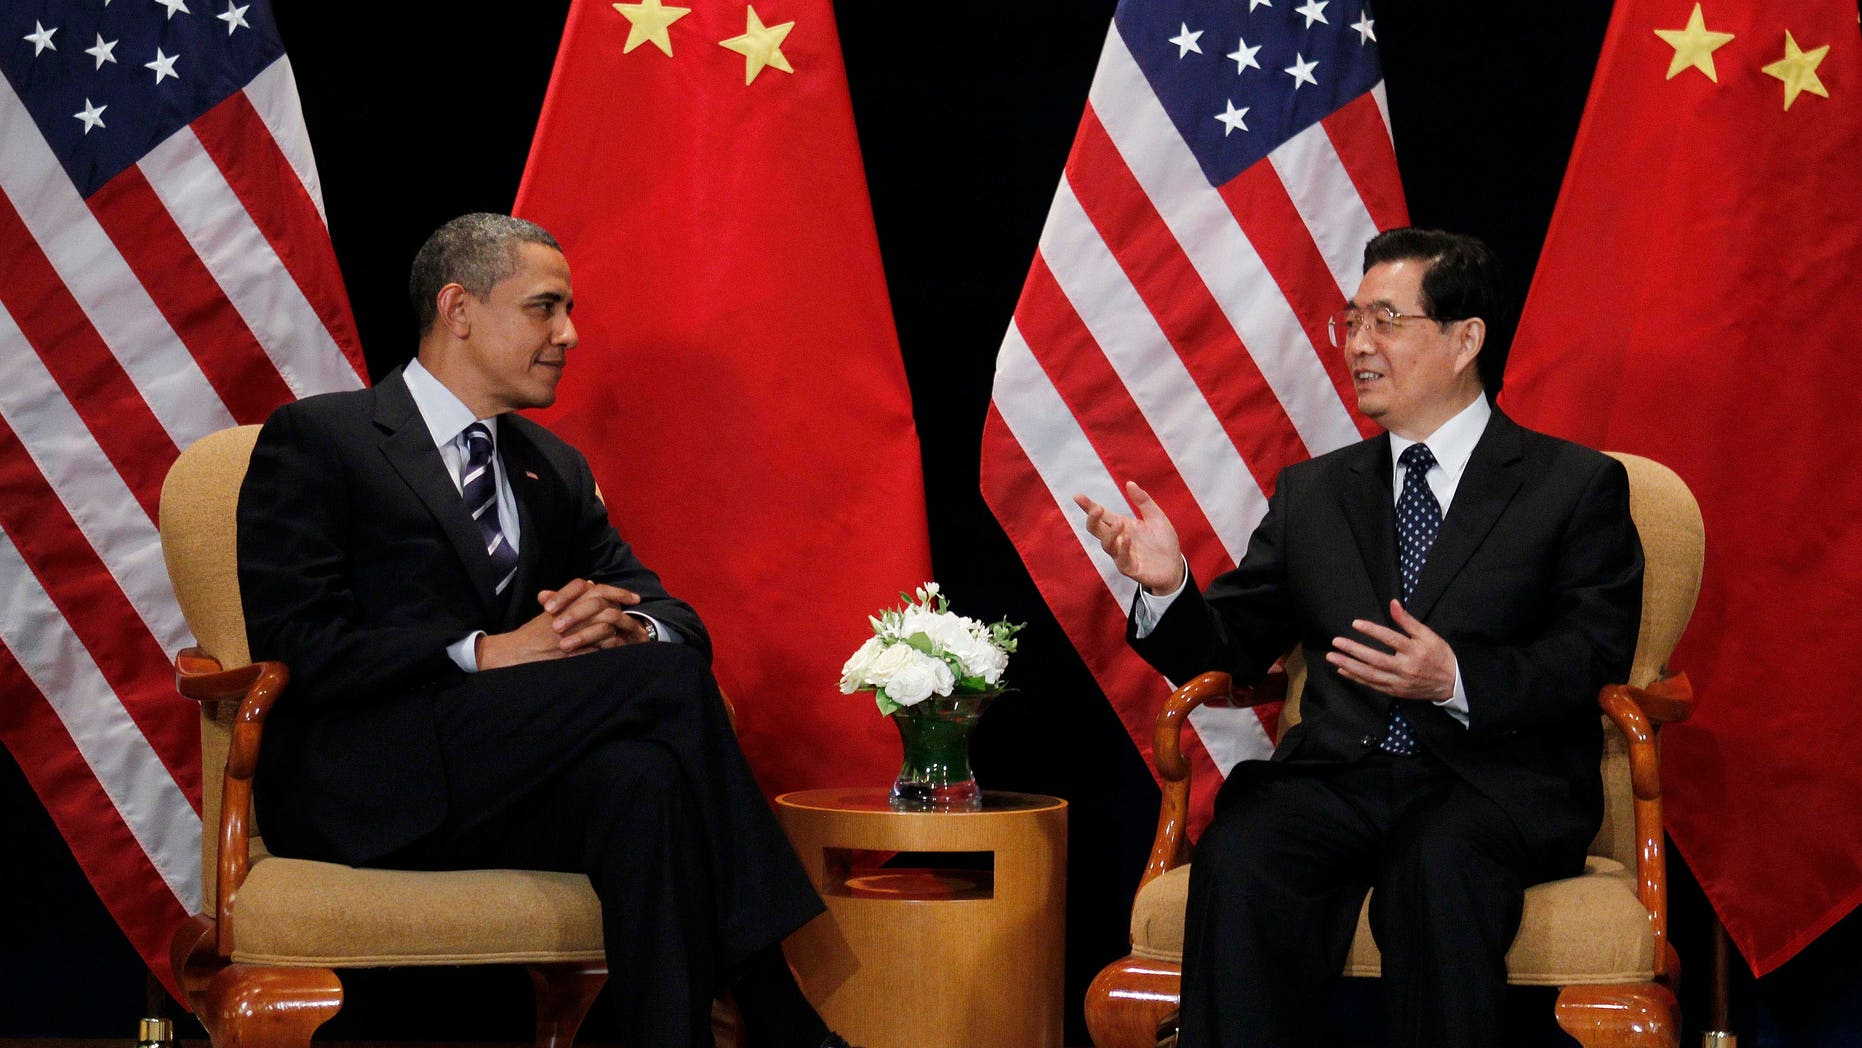 FILE - In this Nov. 11, 2010, file photo President Barack Obama meets with China's President Hu Jintao on the sidelines of the G-20 summit in Seoul, South Korea.